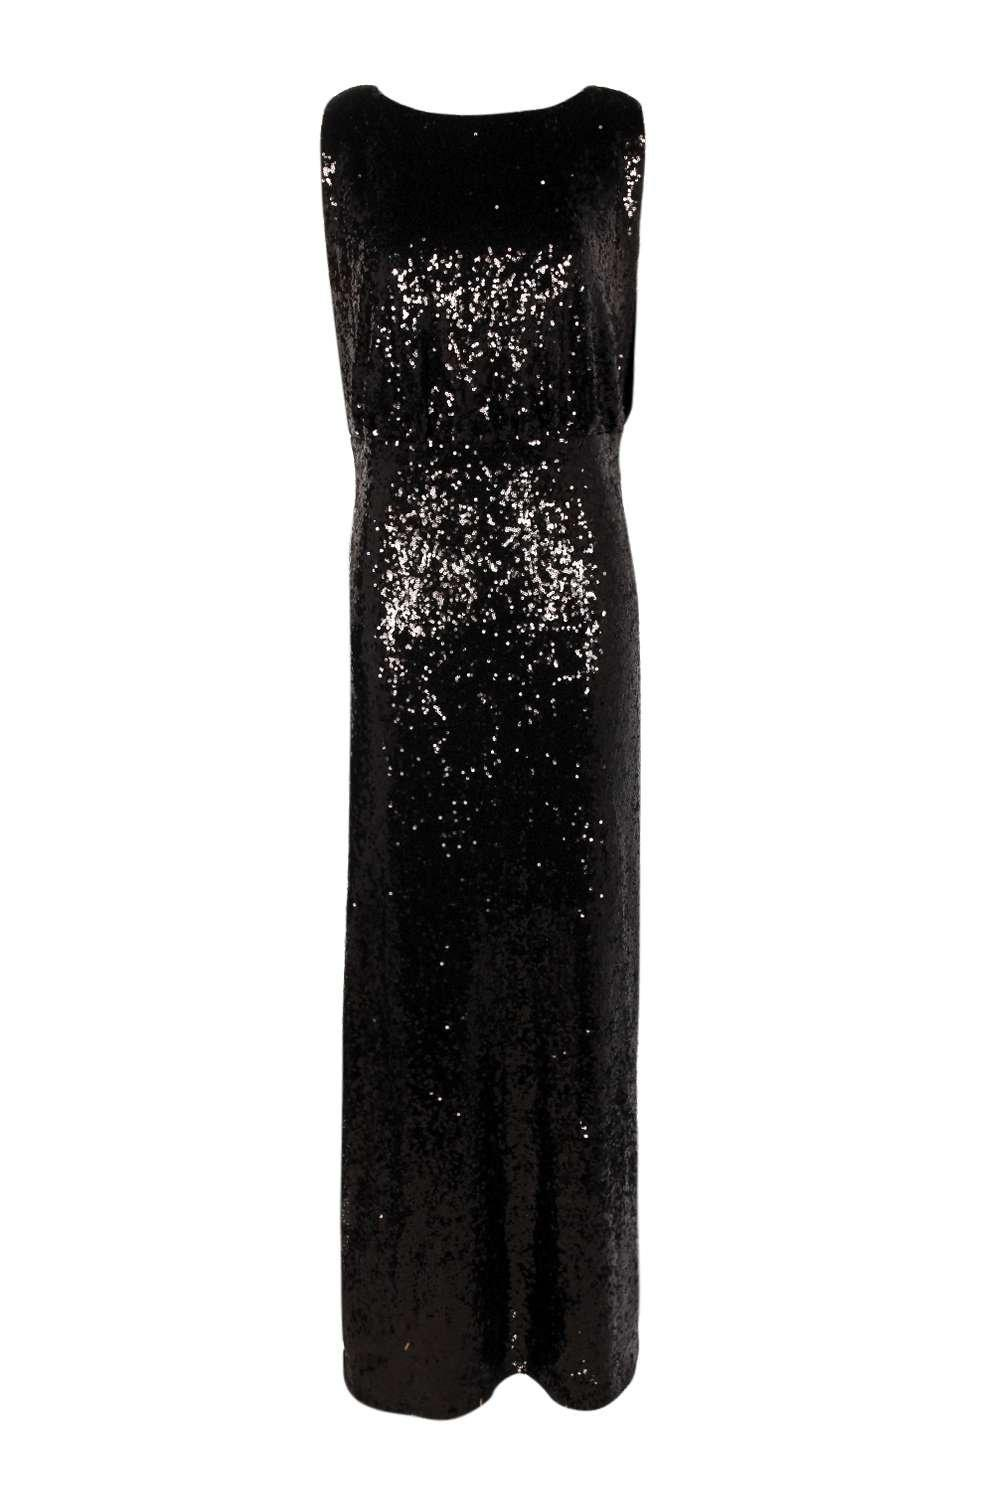 http://www.boohoo.com/restofworld/maxi-dresses/boutique-eliza-sequin-drop-armhole-maxi-dress/invt/dzz94033